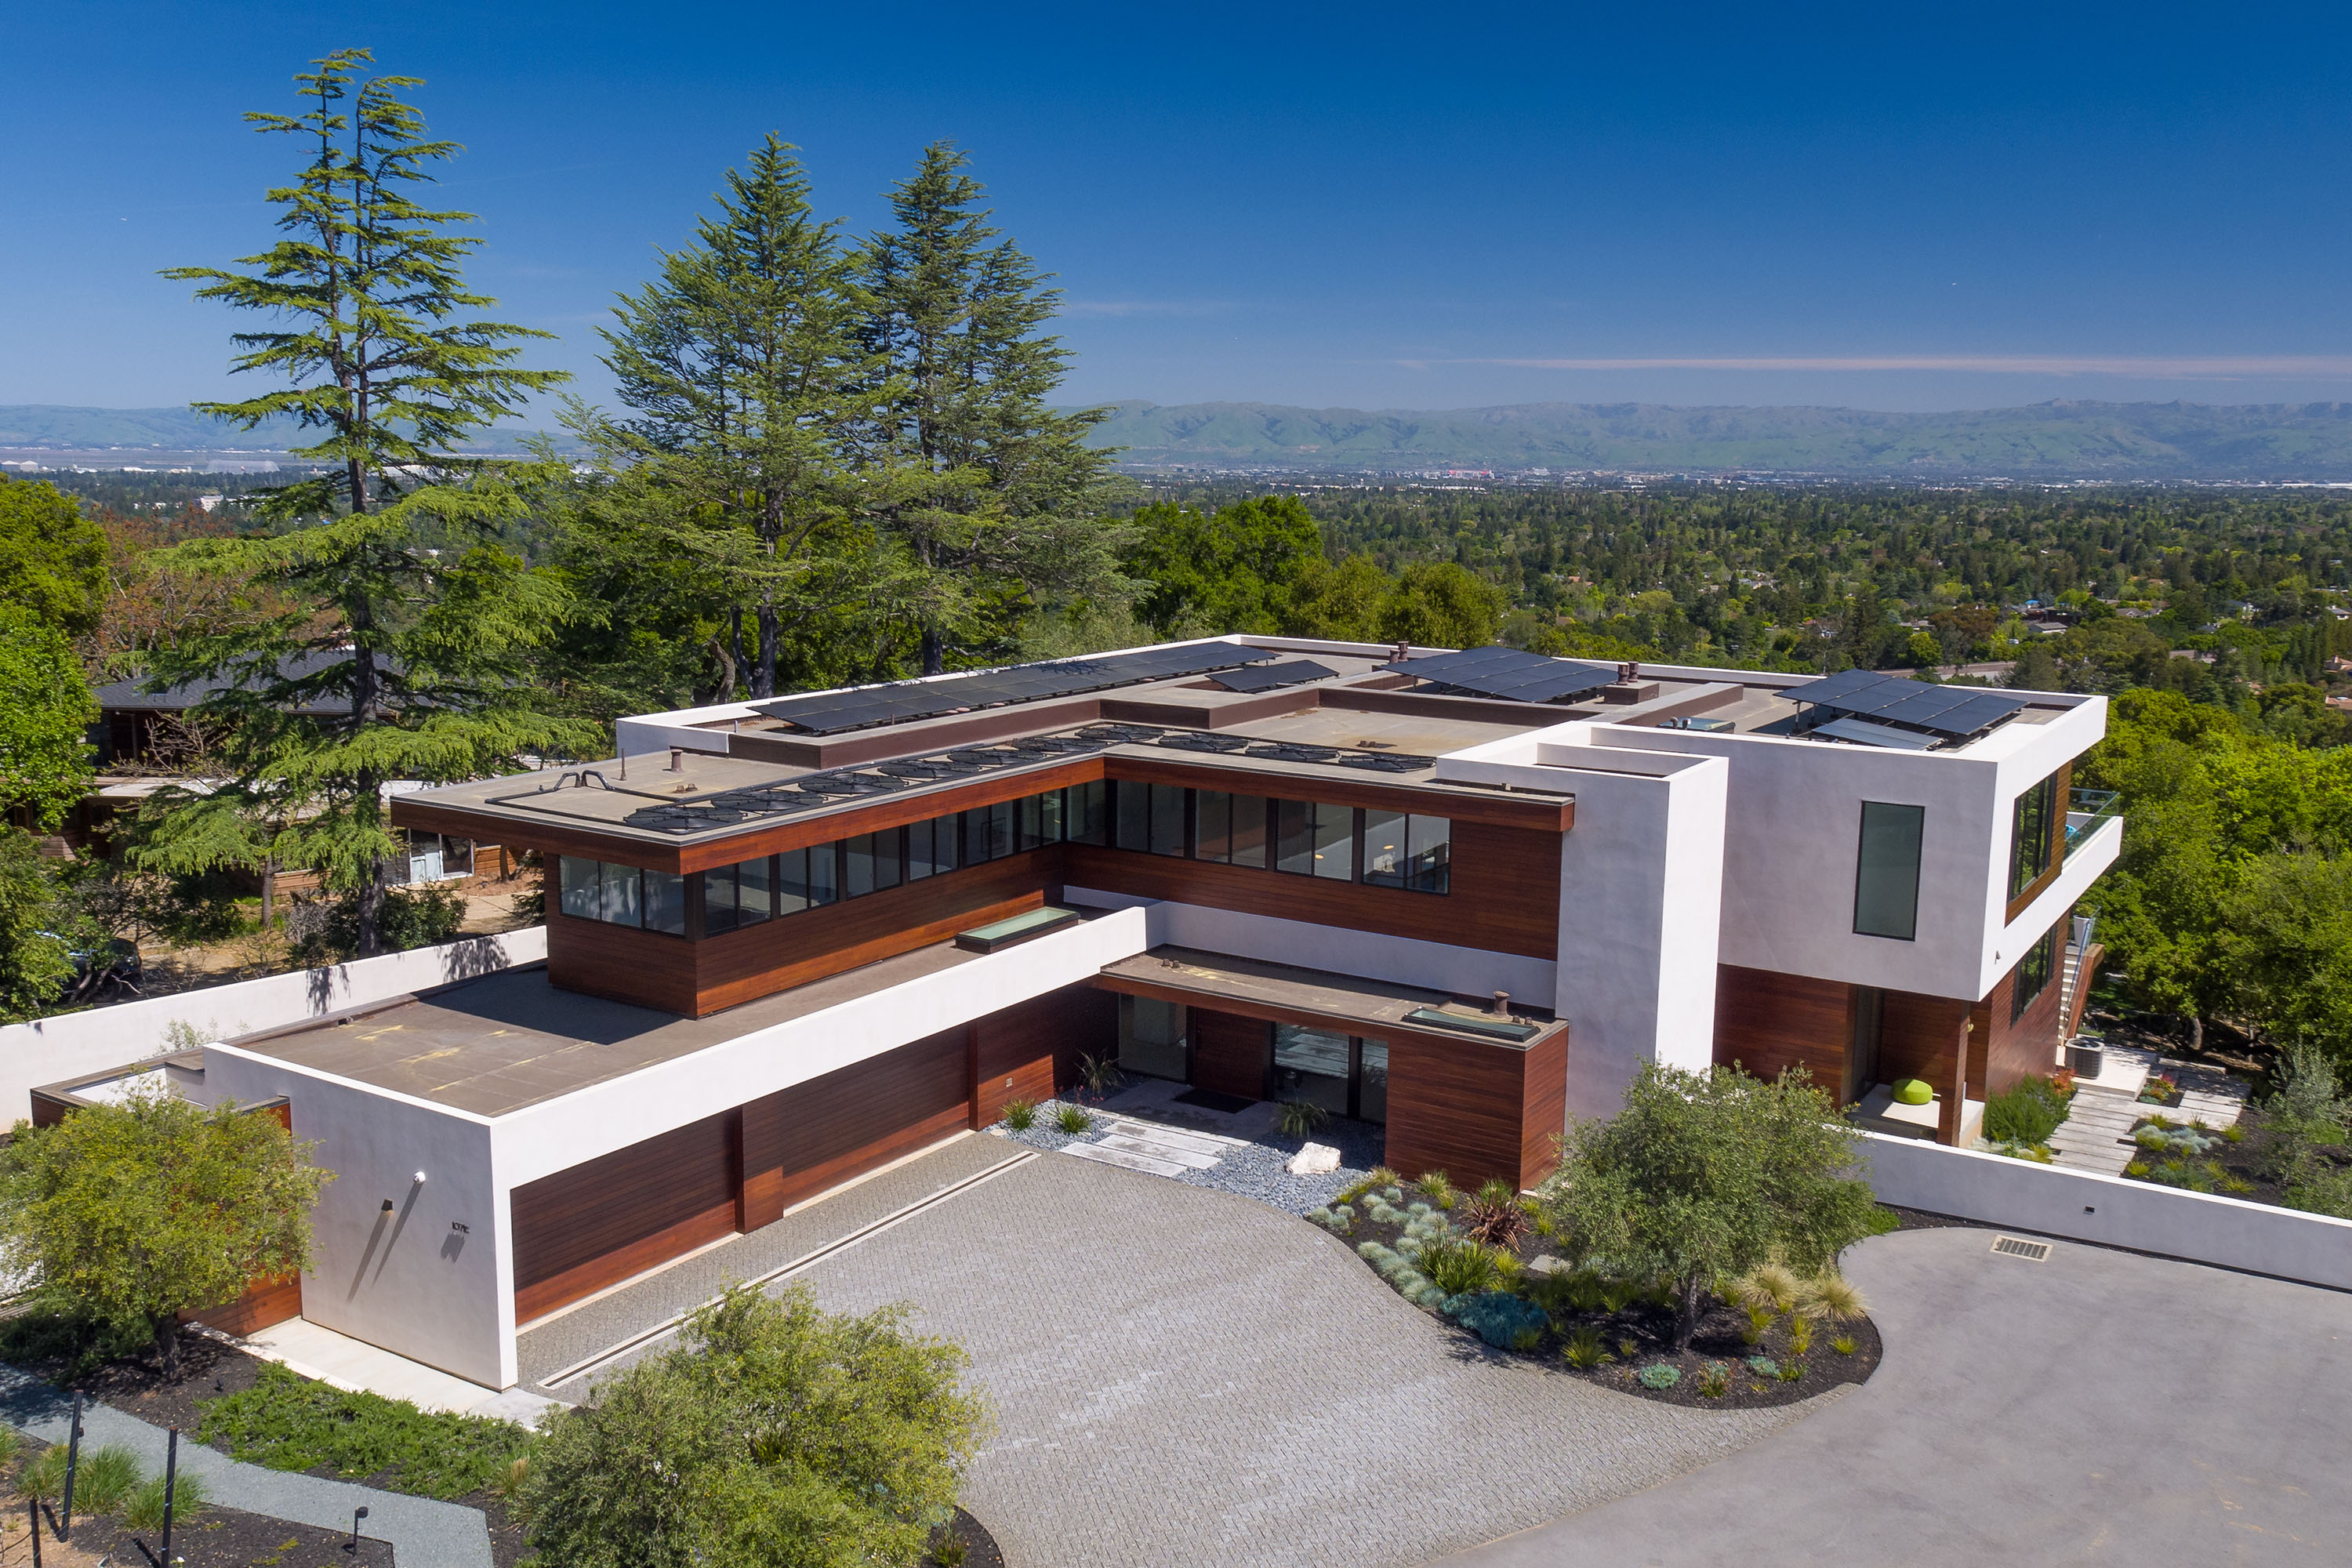 Robert Swatt Designed Los Altos Hills Home Now Asking 18 Interiors Inside Ideas Interiors design about Everything [magnanprojects.com]